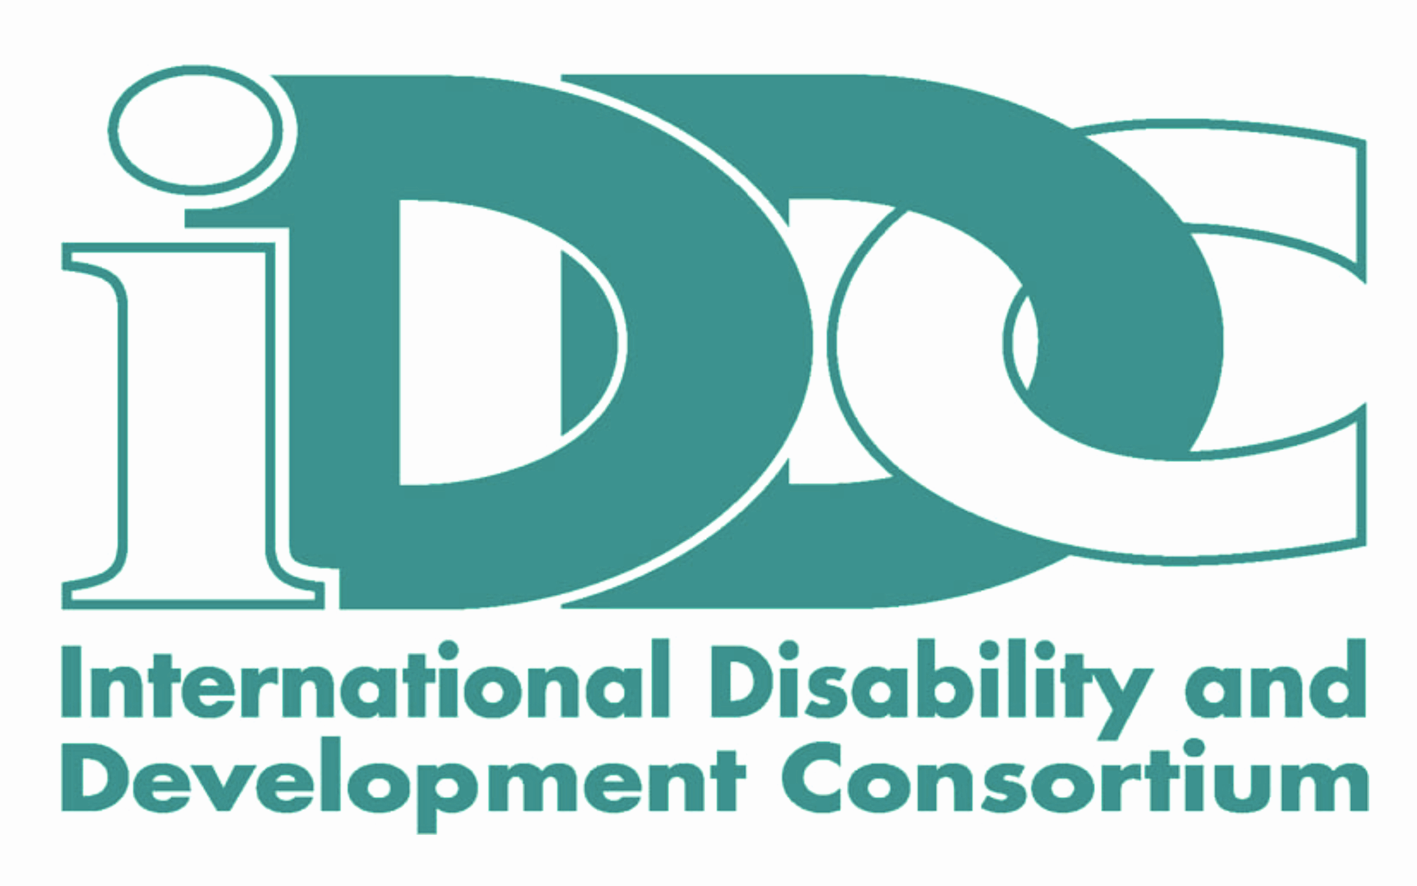 IDDC Consultation on Inclusive Development